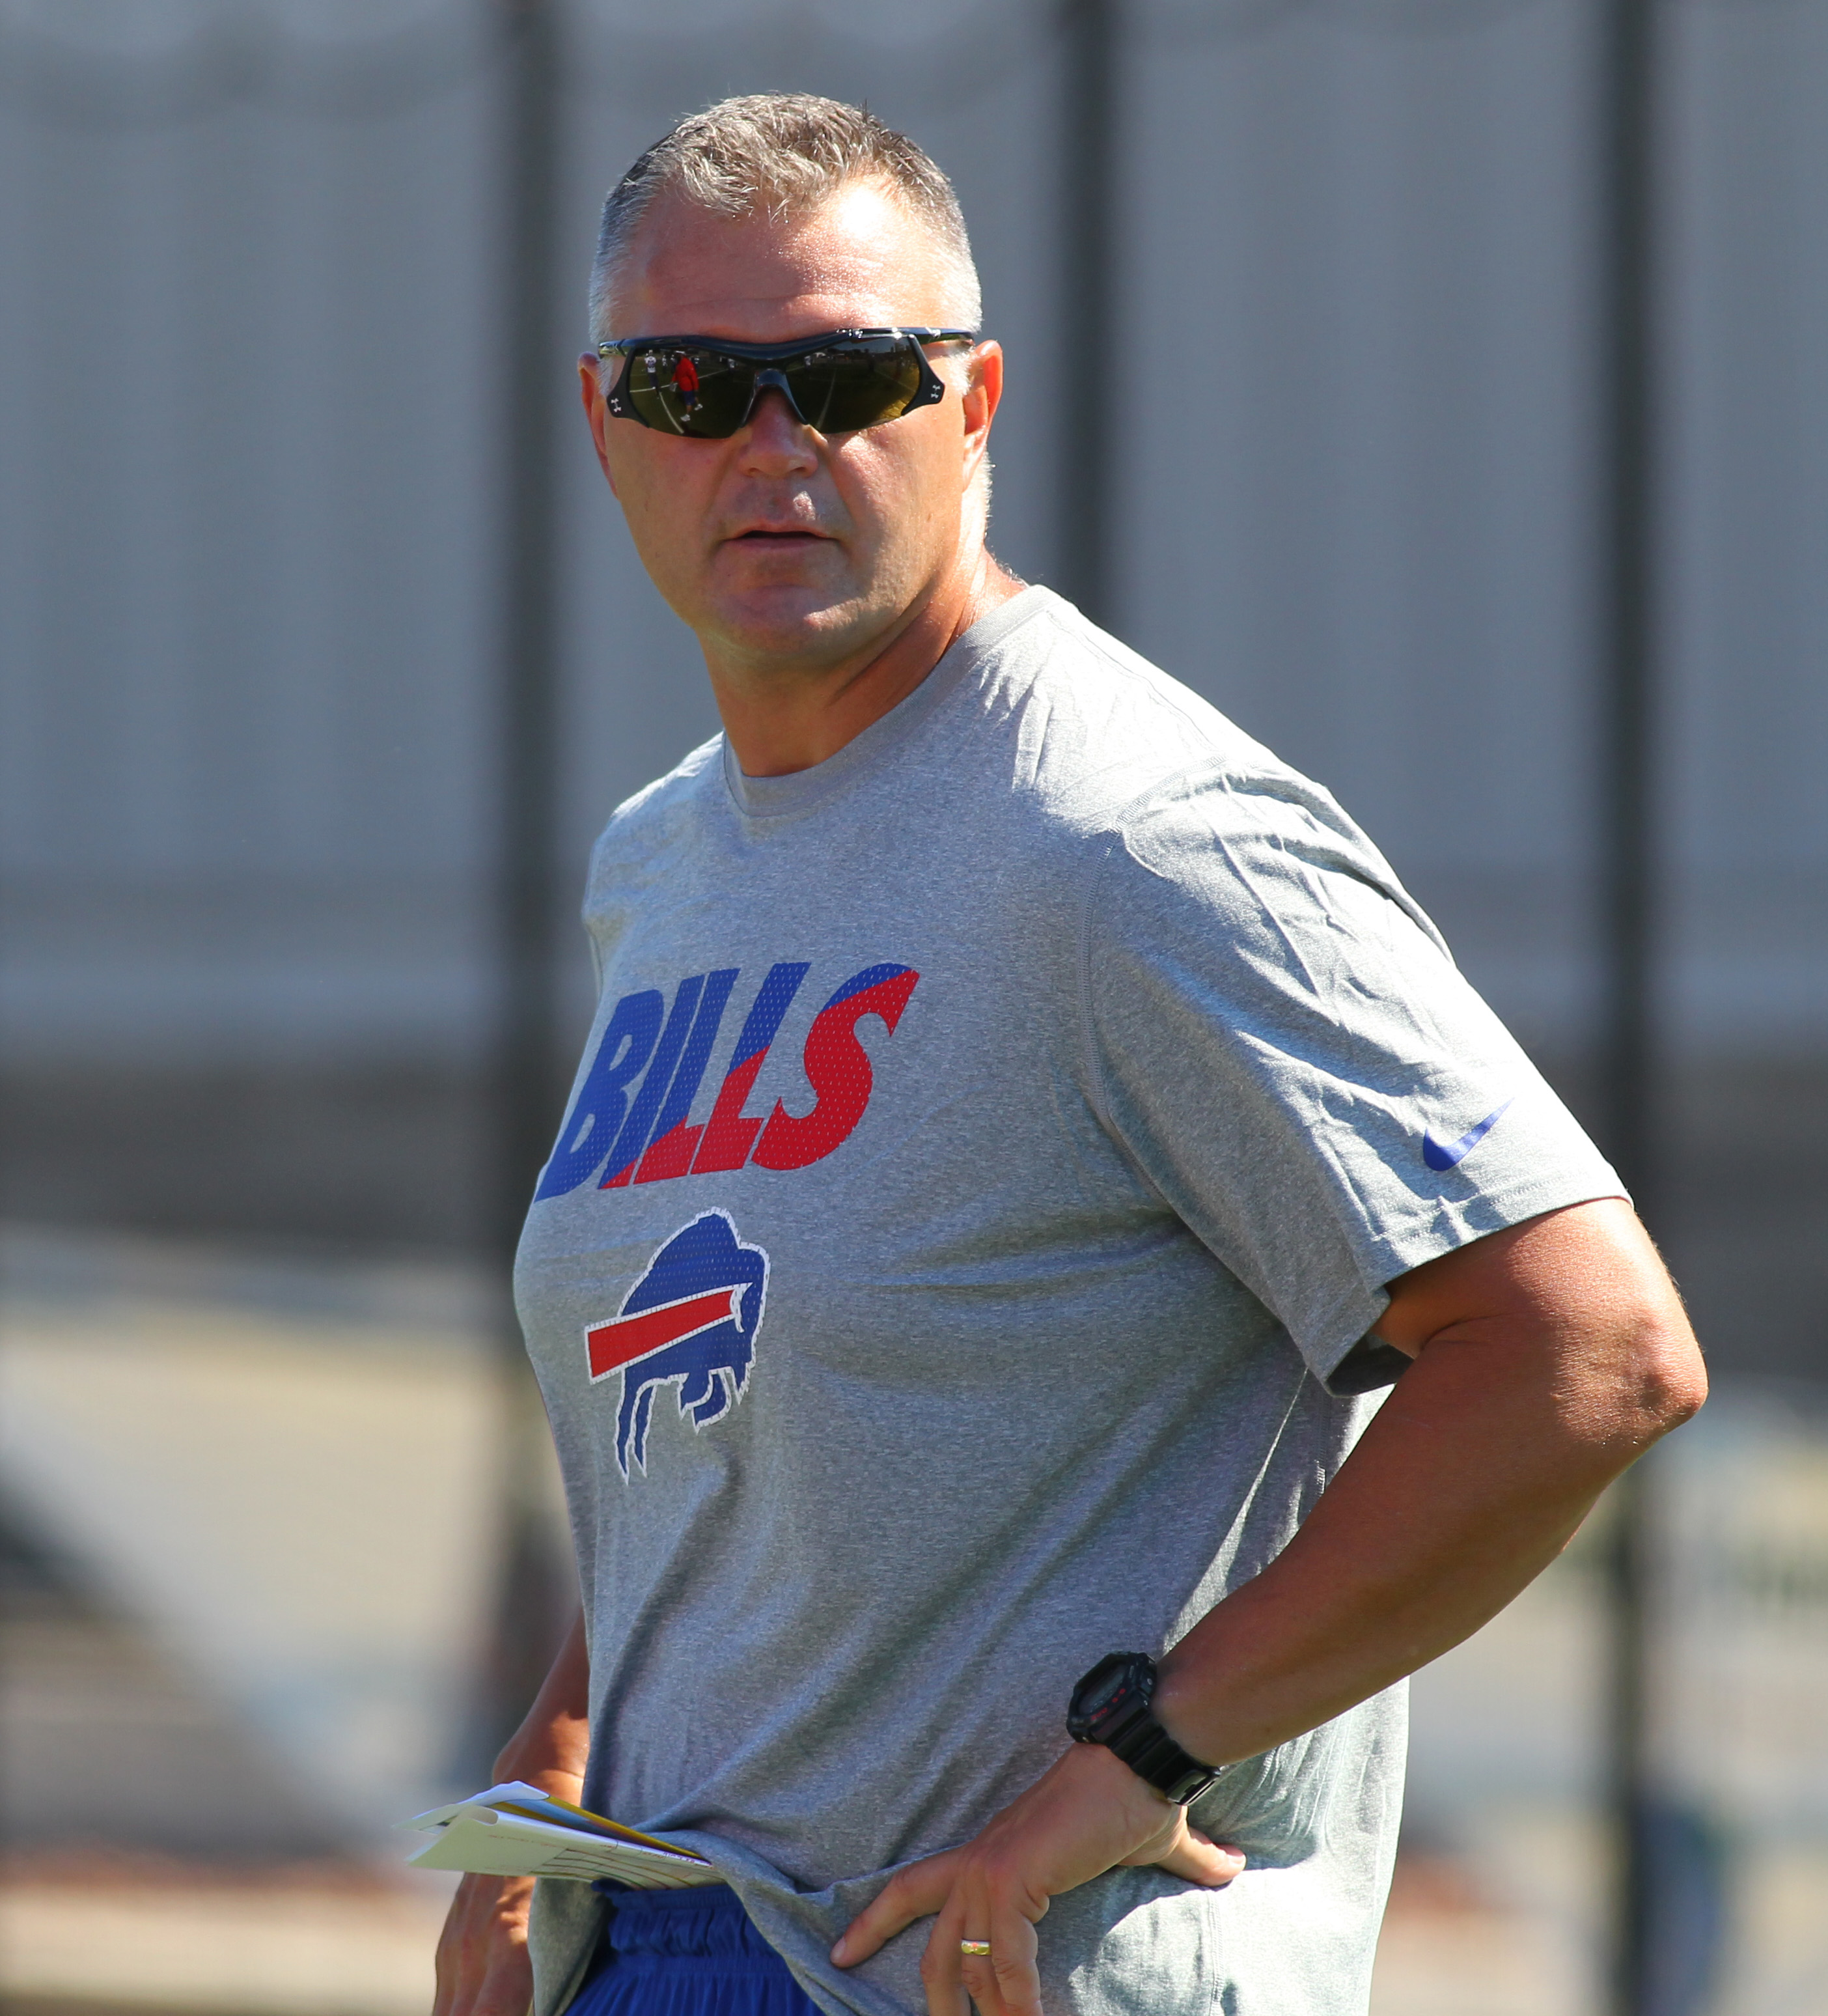 Buffalo Bills football operations consultant Pat Meyer watches the action during their NFL football training camp in Pittsford, N.Y., Friday, July 31, 2015. (AP Photo/Bill Wippert)